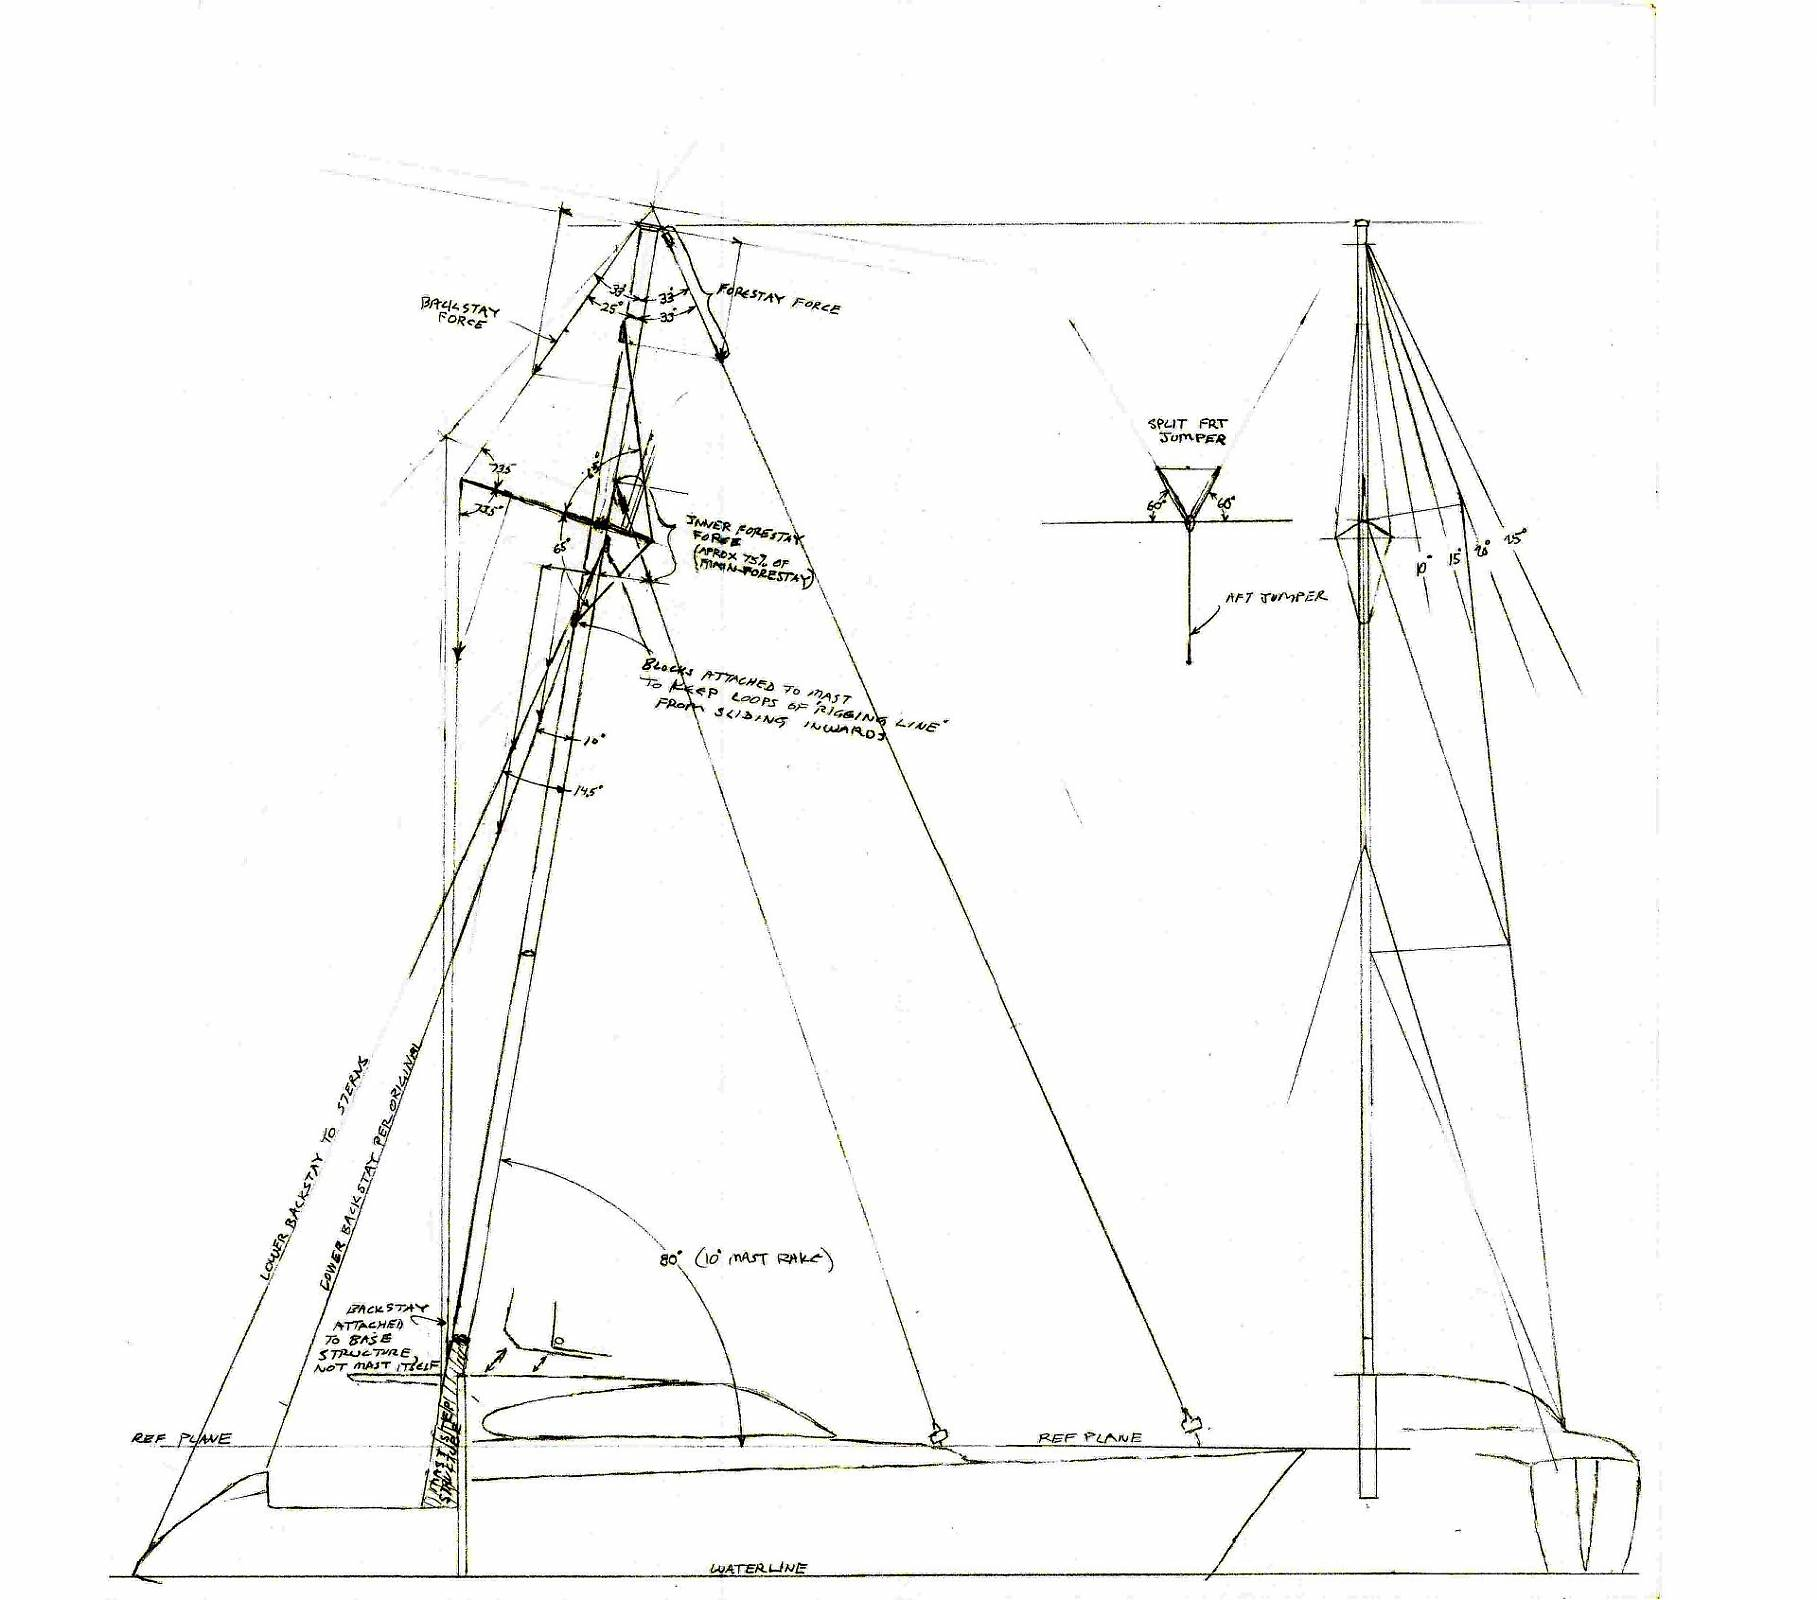 mast rigging diagram 7 rv plug wiring electrical diagrams for small sailboats sailboat